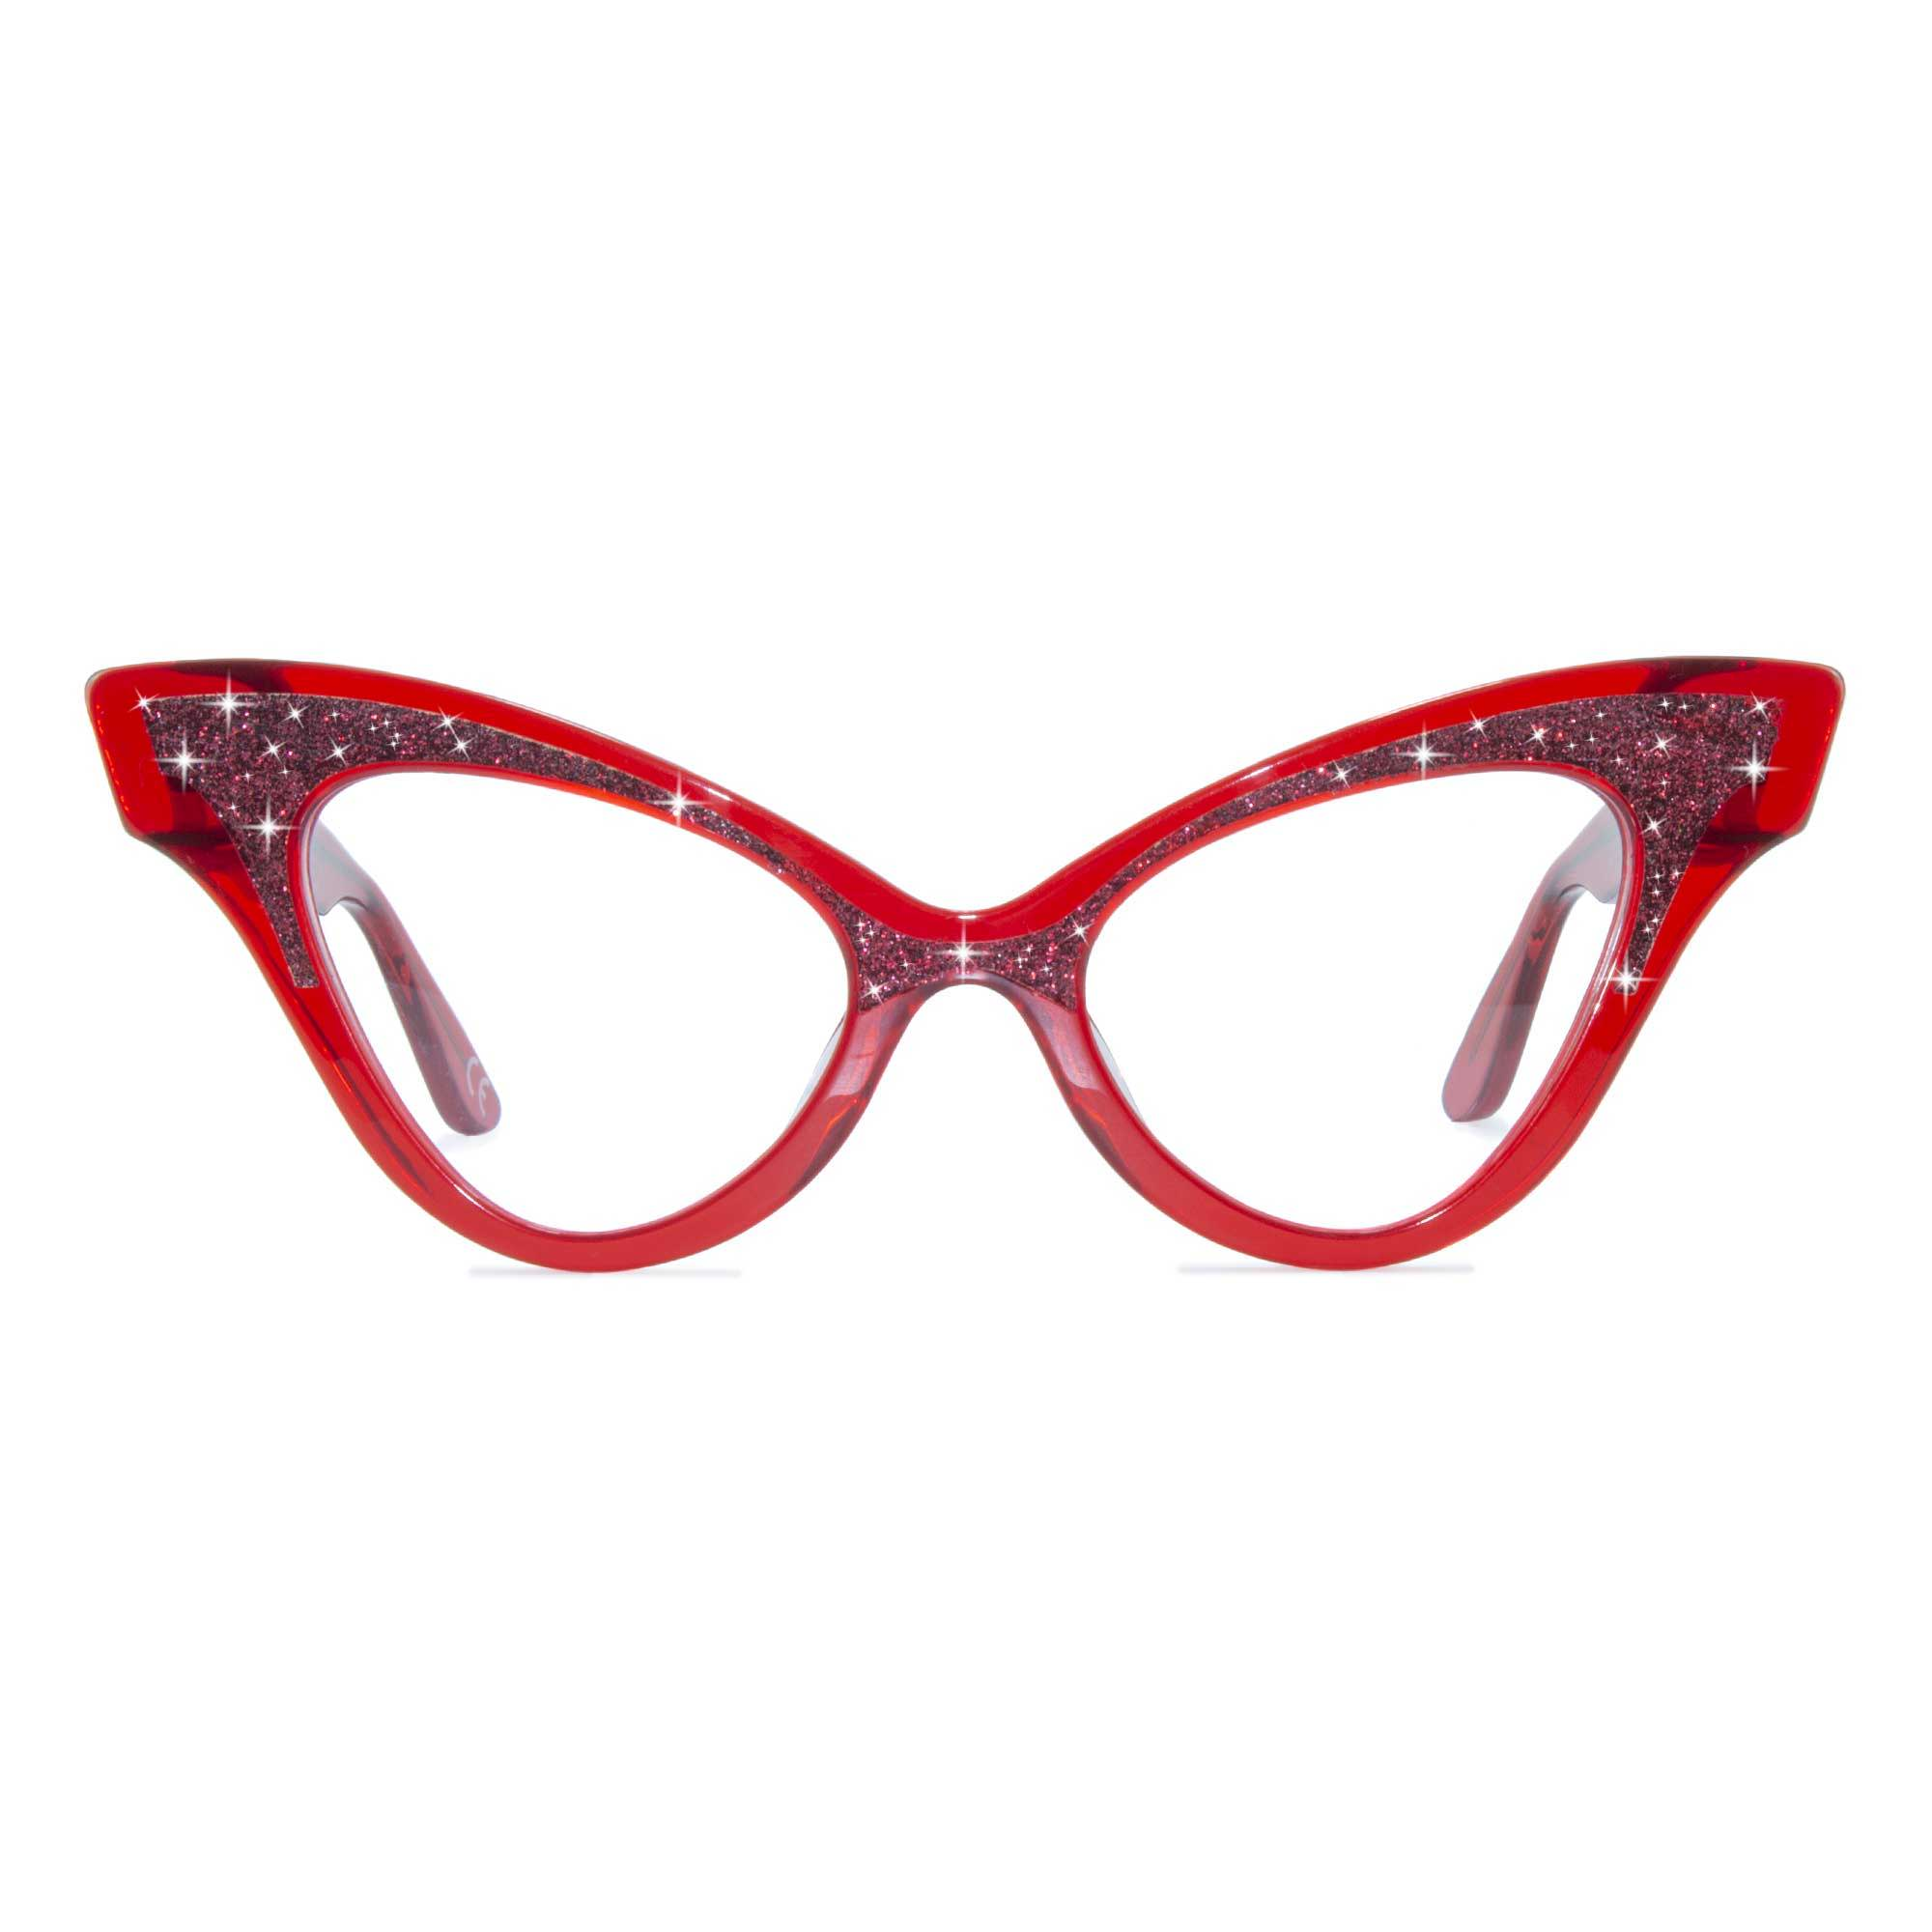 Joiuss glimmer clear red sparkle glasses